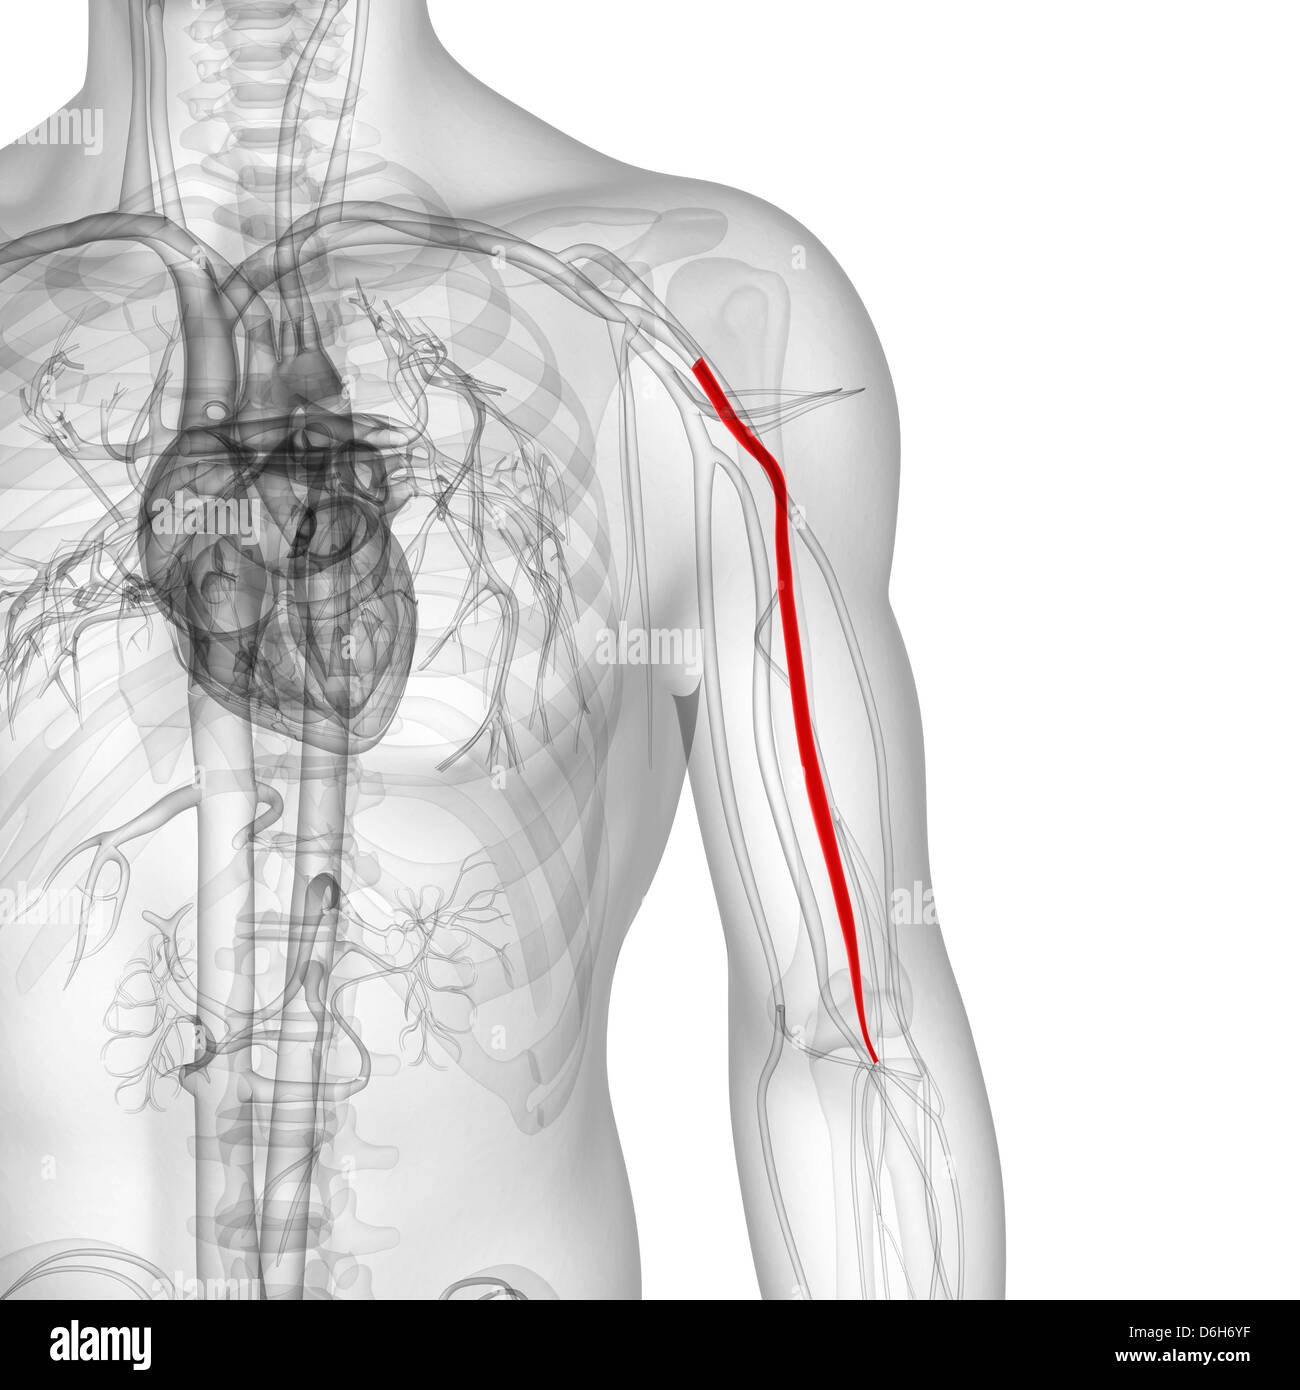 Brachial Artery Stock Photos & Brachial Artery Stock Images - Alamy